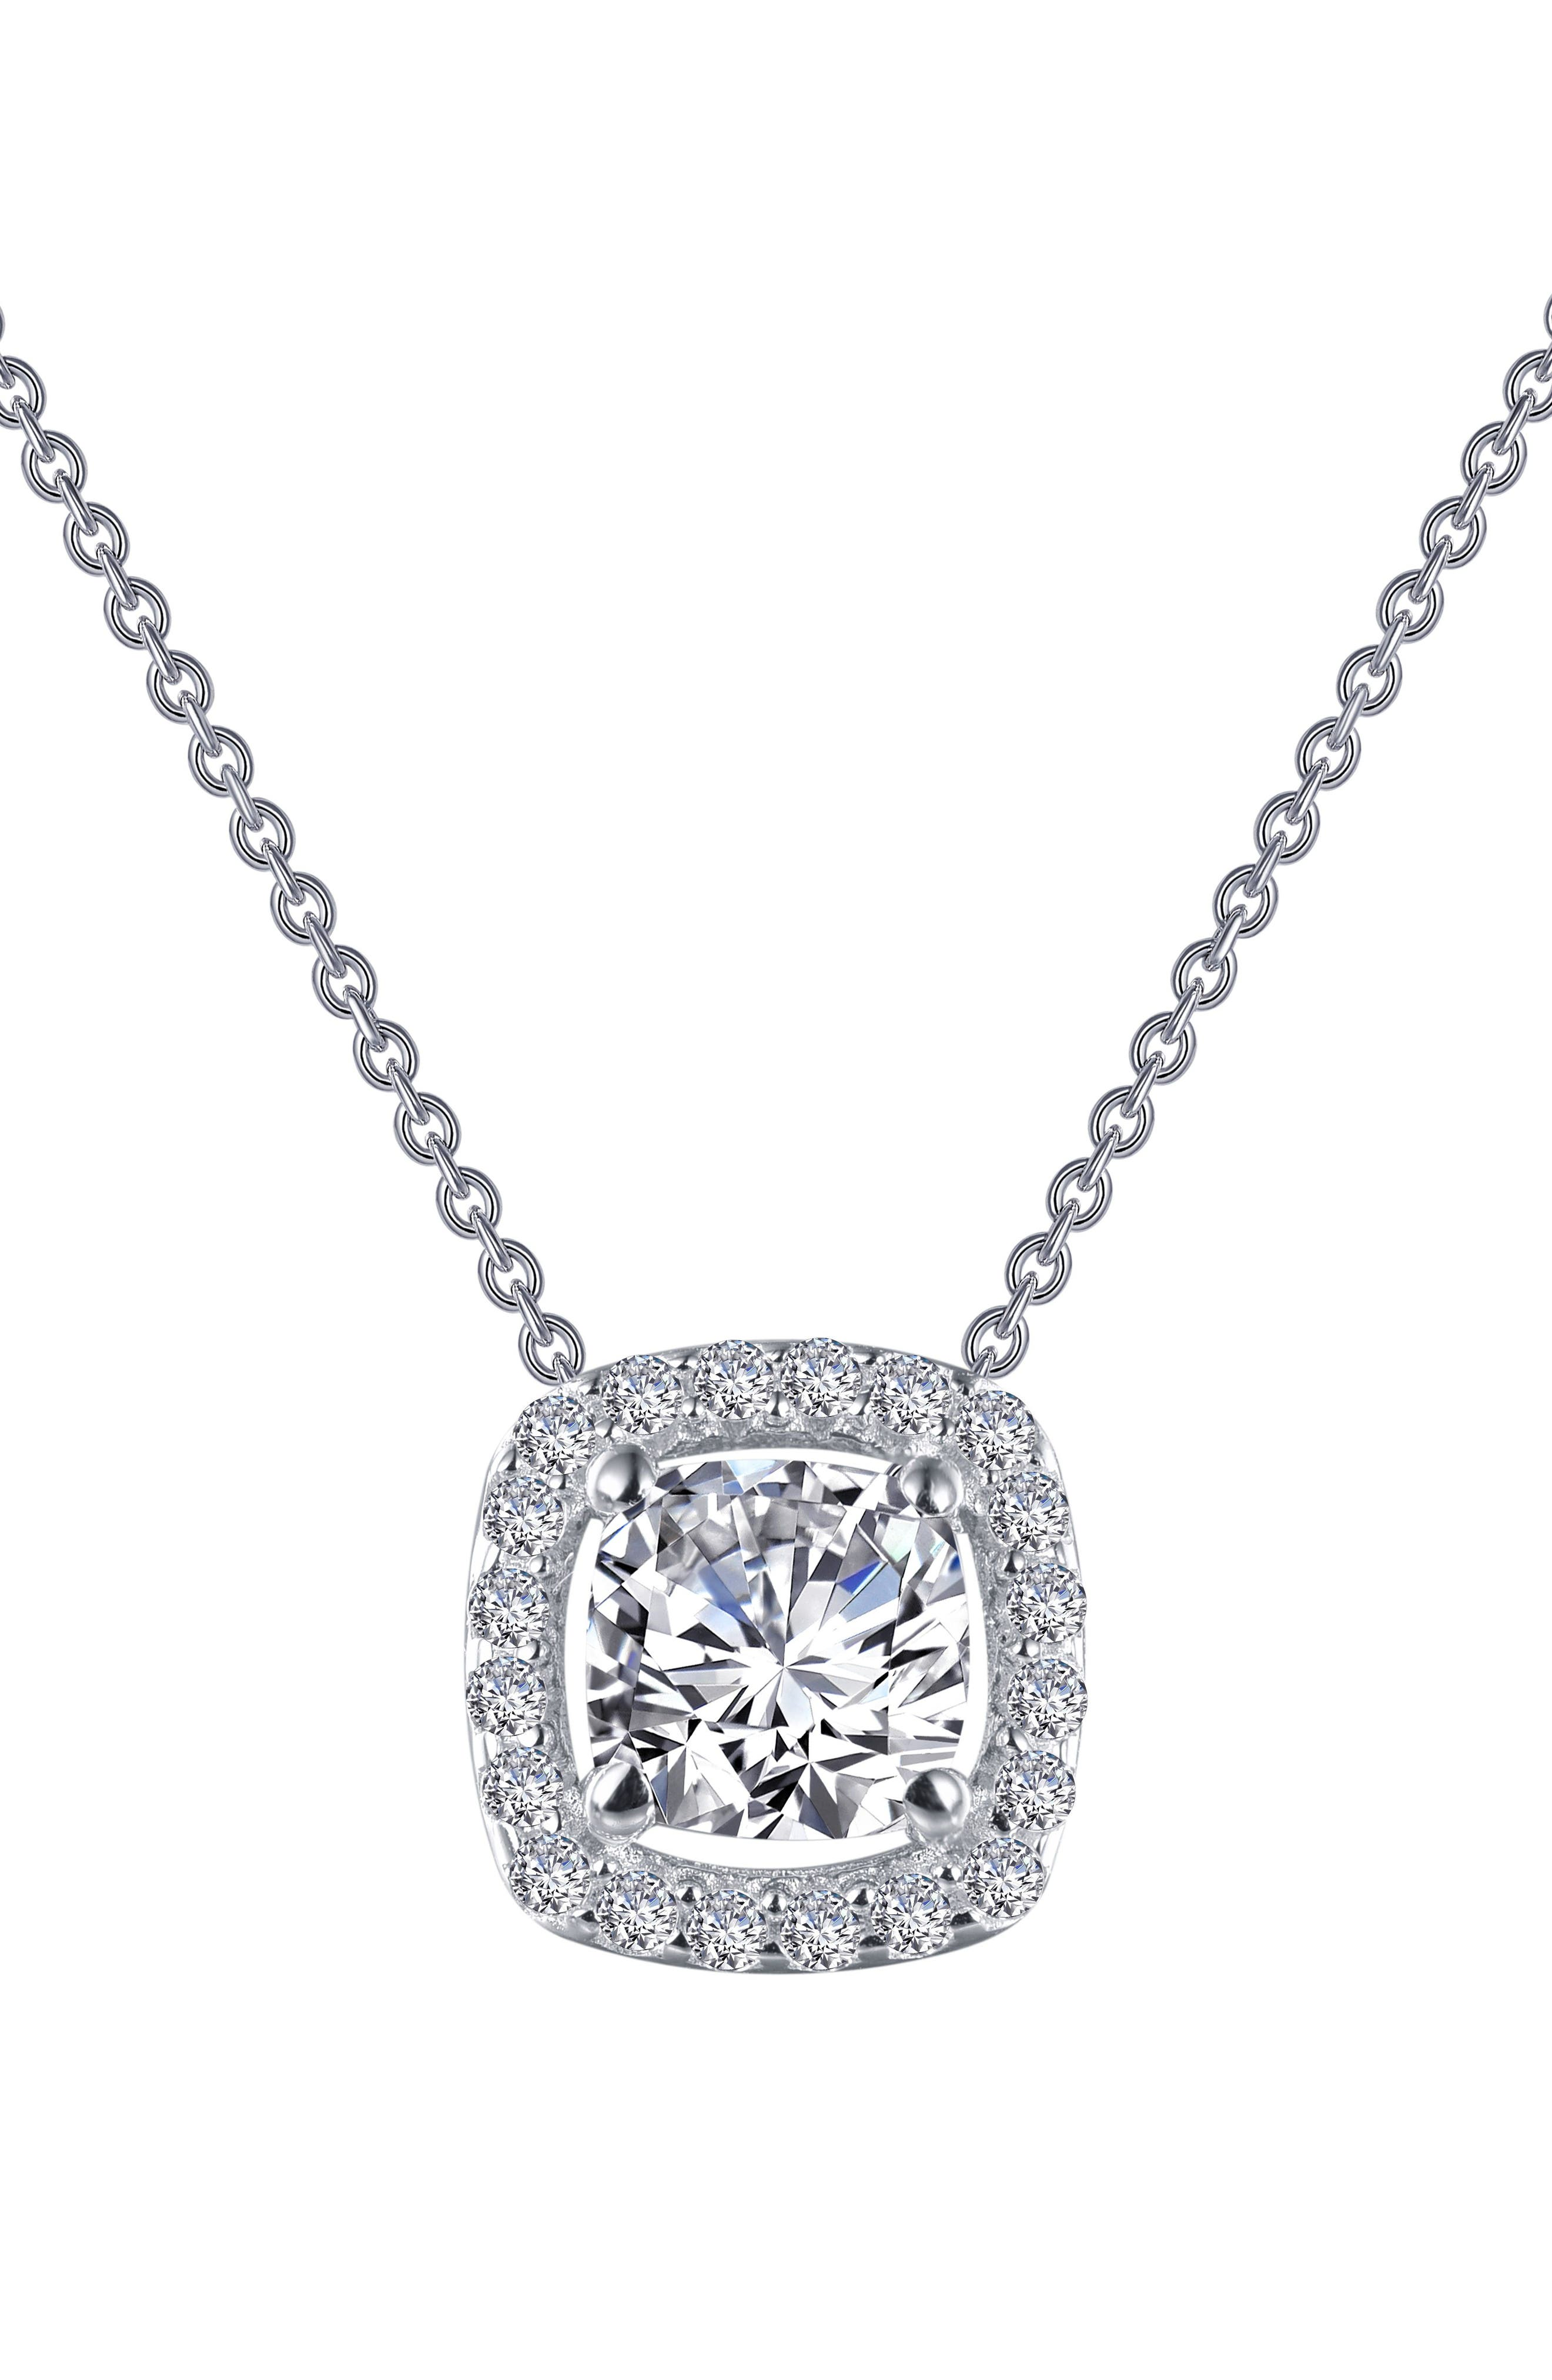 Cushion Cut Halo Necklace,                             Alternate thumbnail 3, color,                             Silver/ Clear